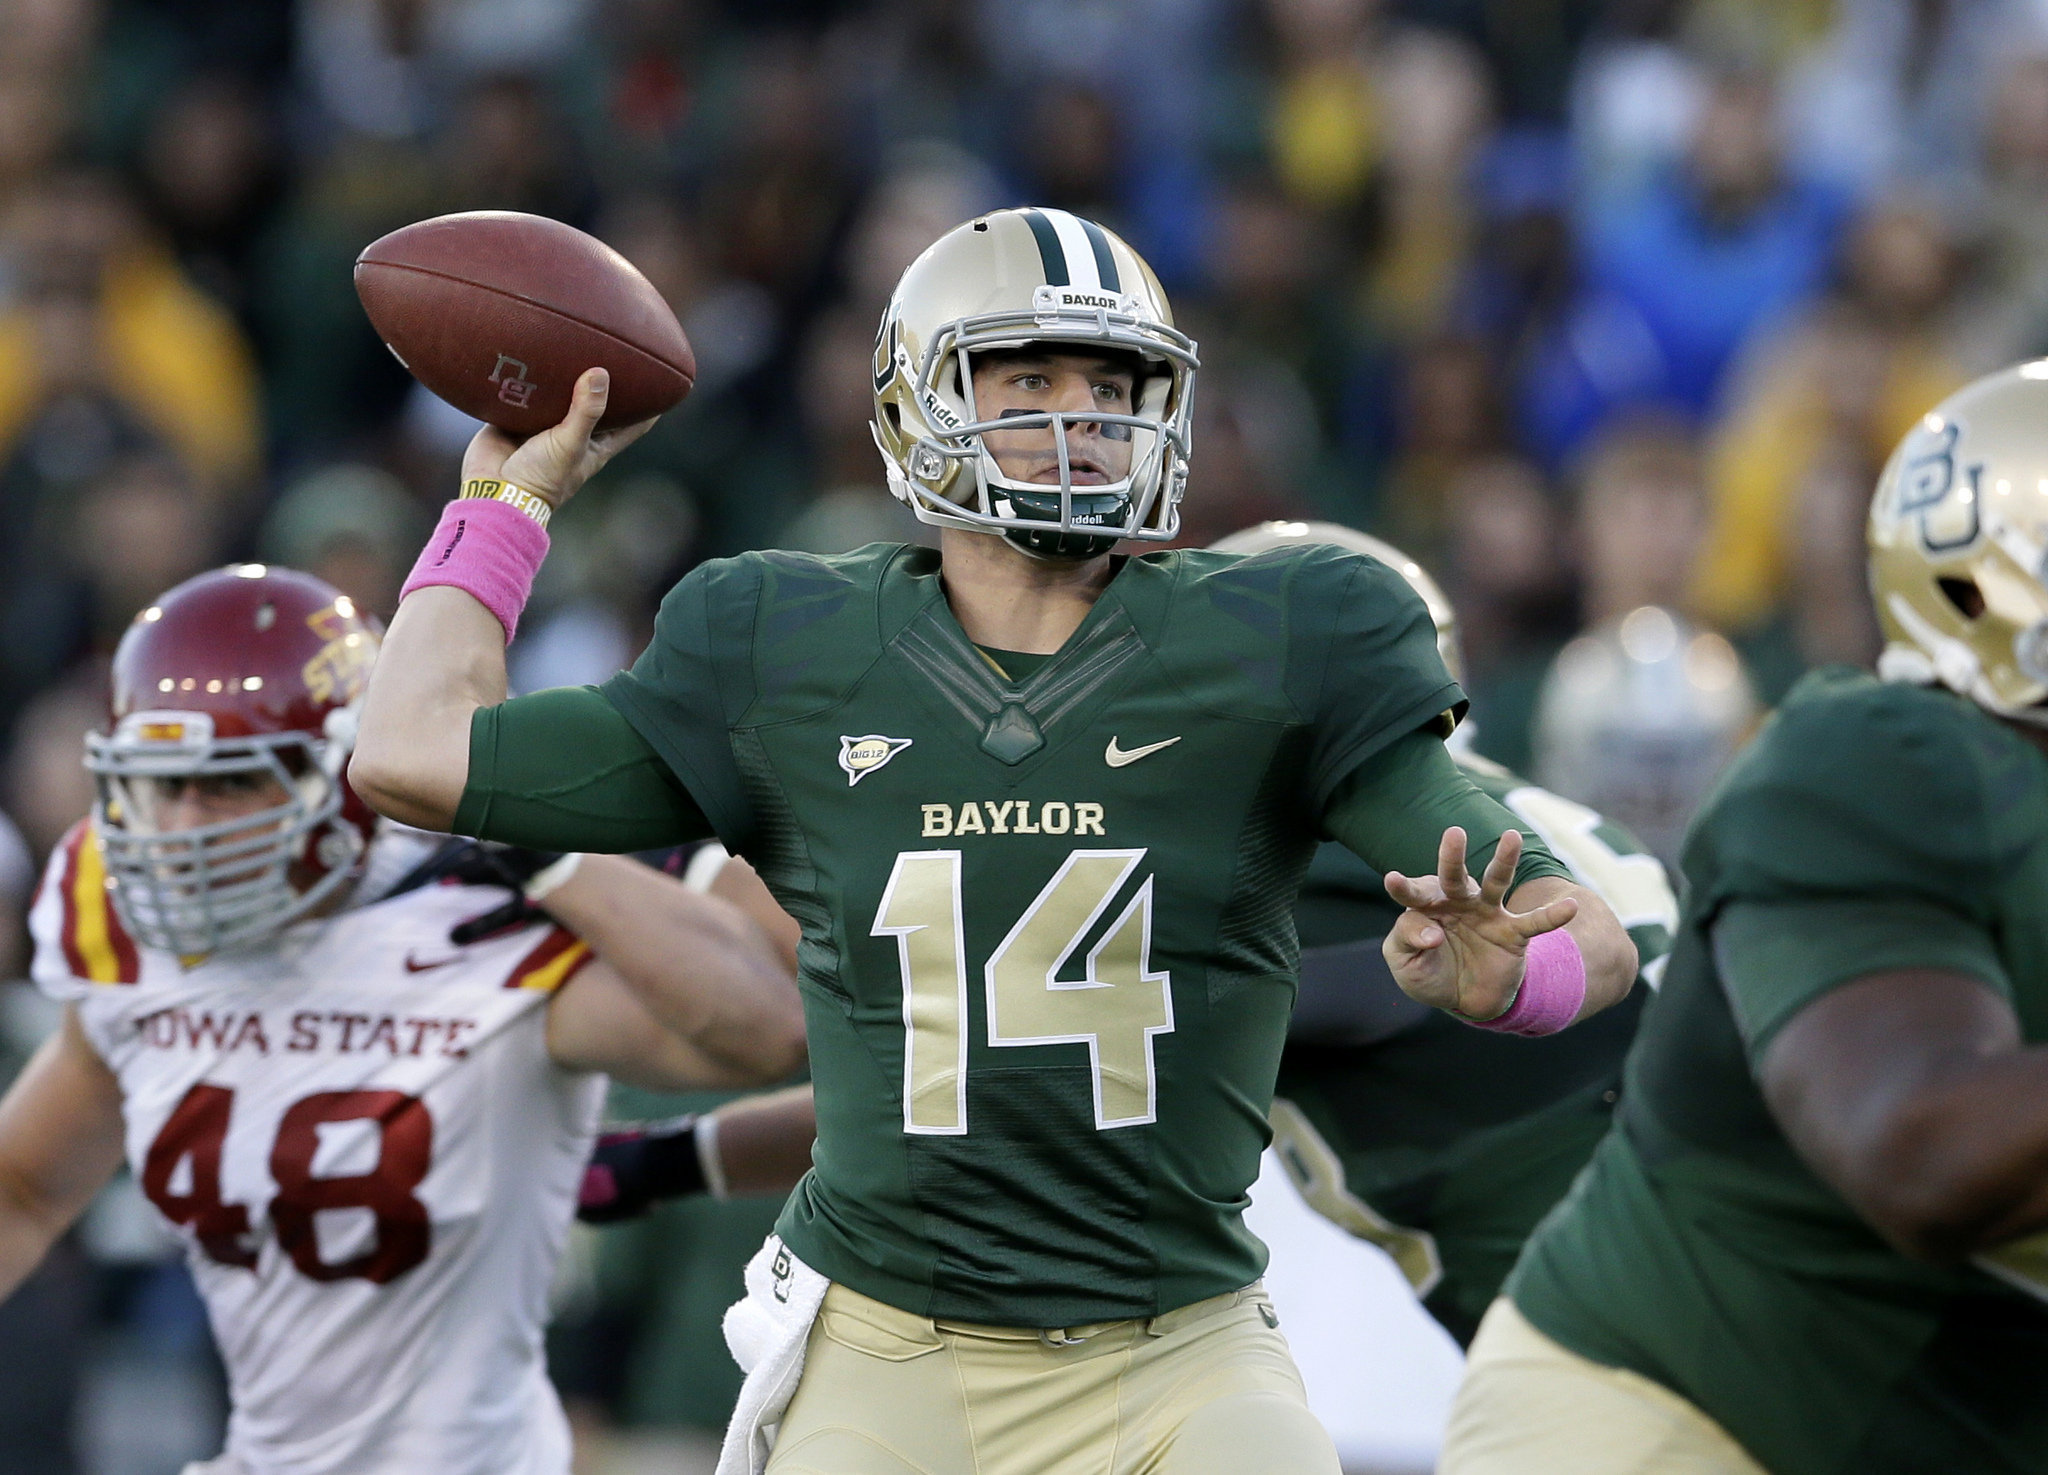 Jets Grab Baylor Quarterback Bryce Petty